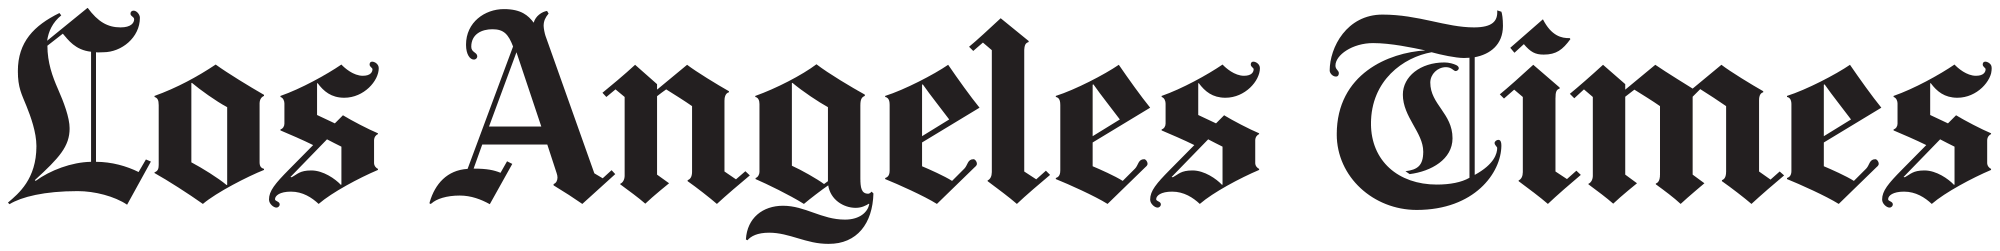 2000px-Los_Angeles_Times_logo.png